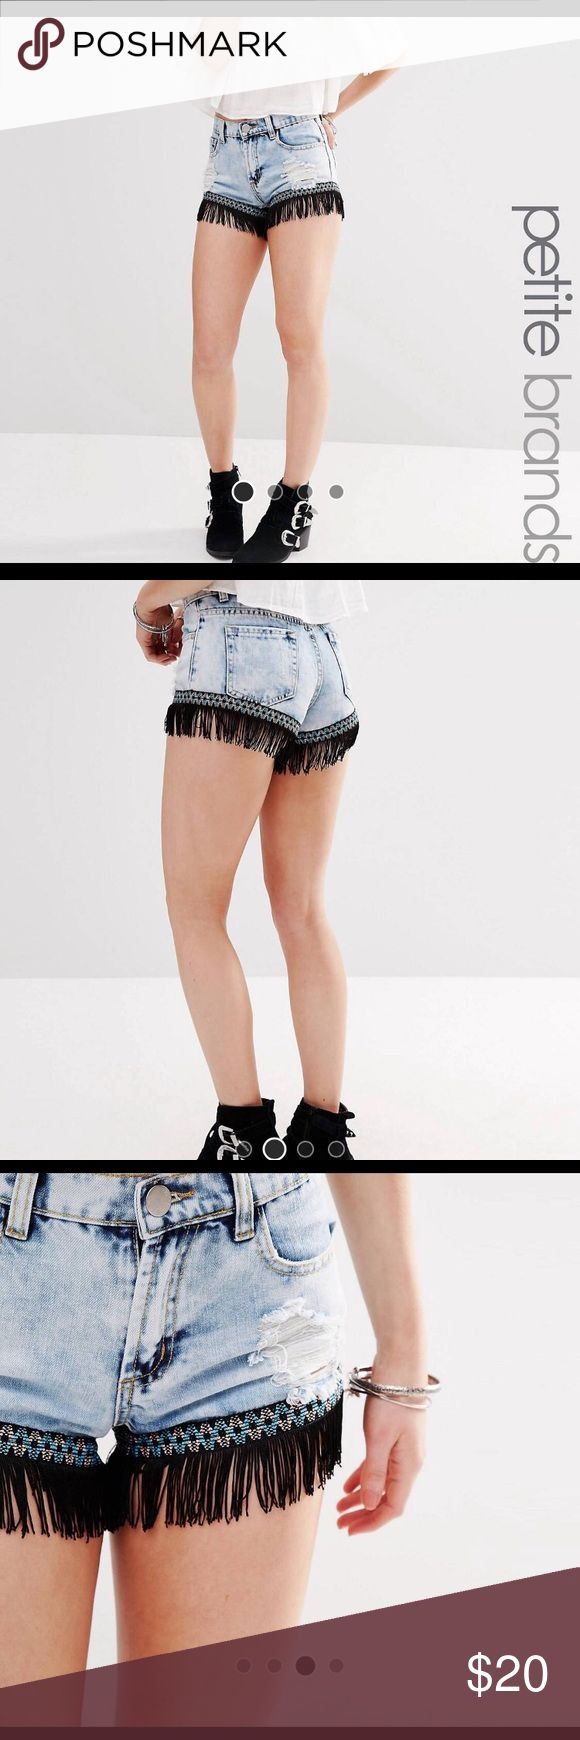 Fringed Denim Shorts ASOS Petite Acid Wash Fringed Hem Denim Shorts - UK 14 / US 10 - only worn once - Fringe detail is SUPER cute, perfect Festival shorts ASOS Petite Shorts Jean Shorts